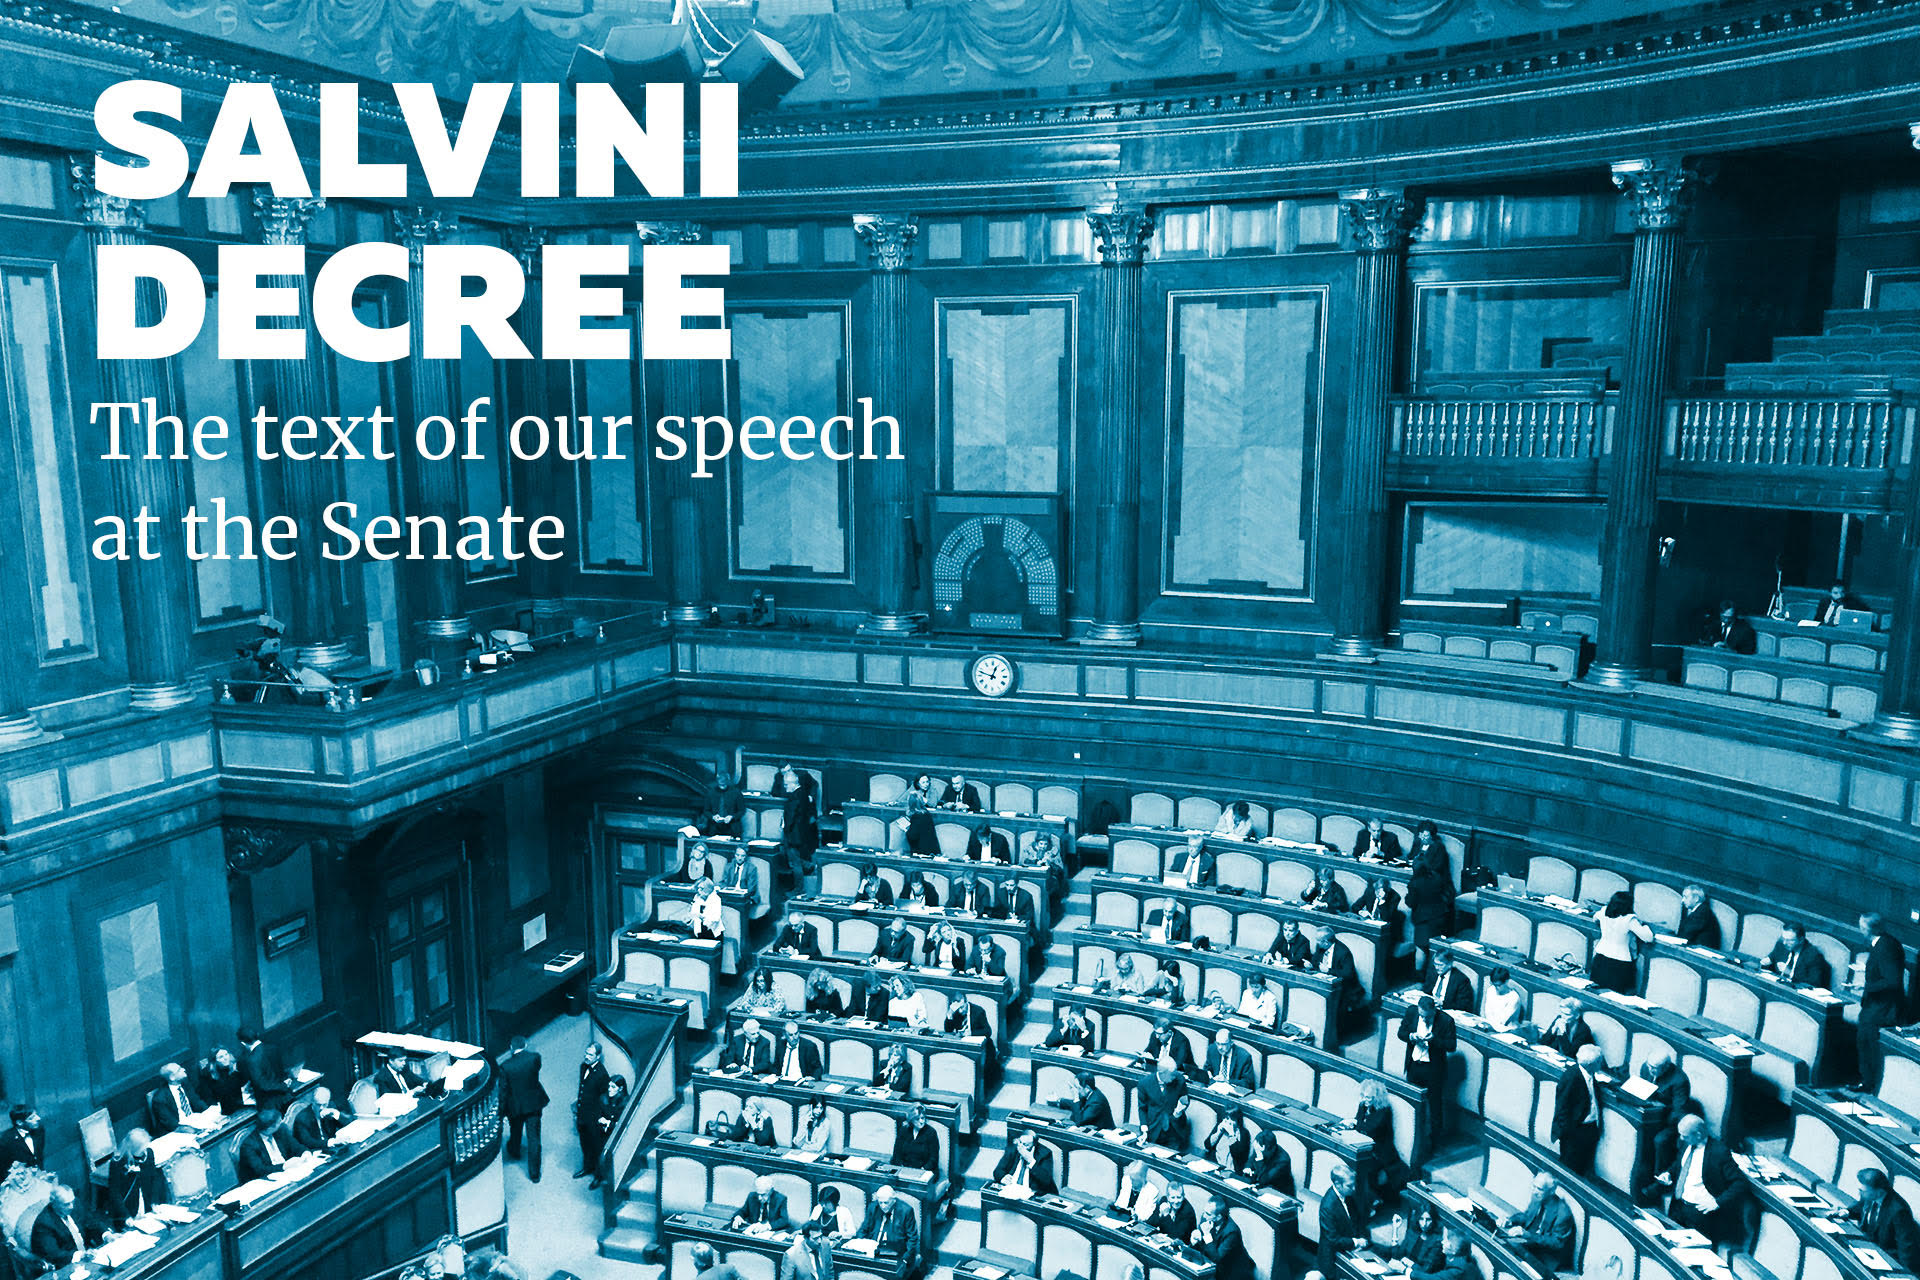 Salvini decree. The text of our speech at the Senate